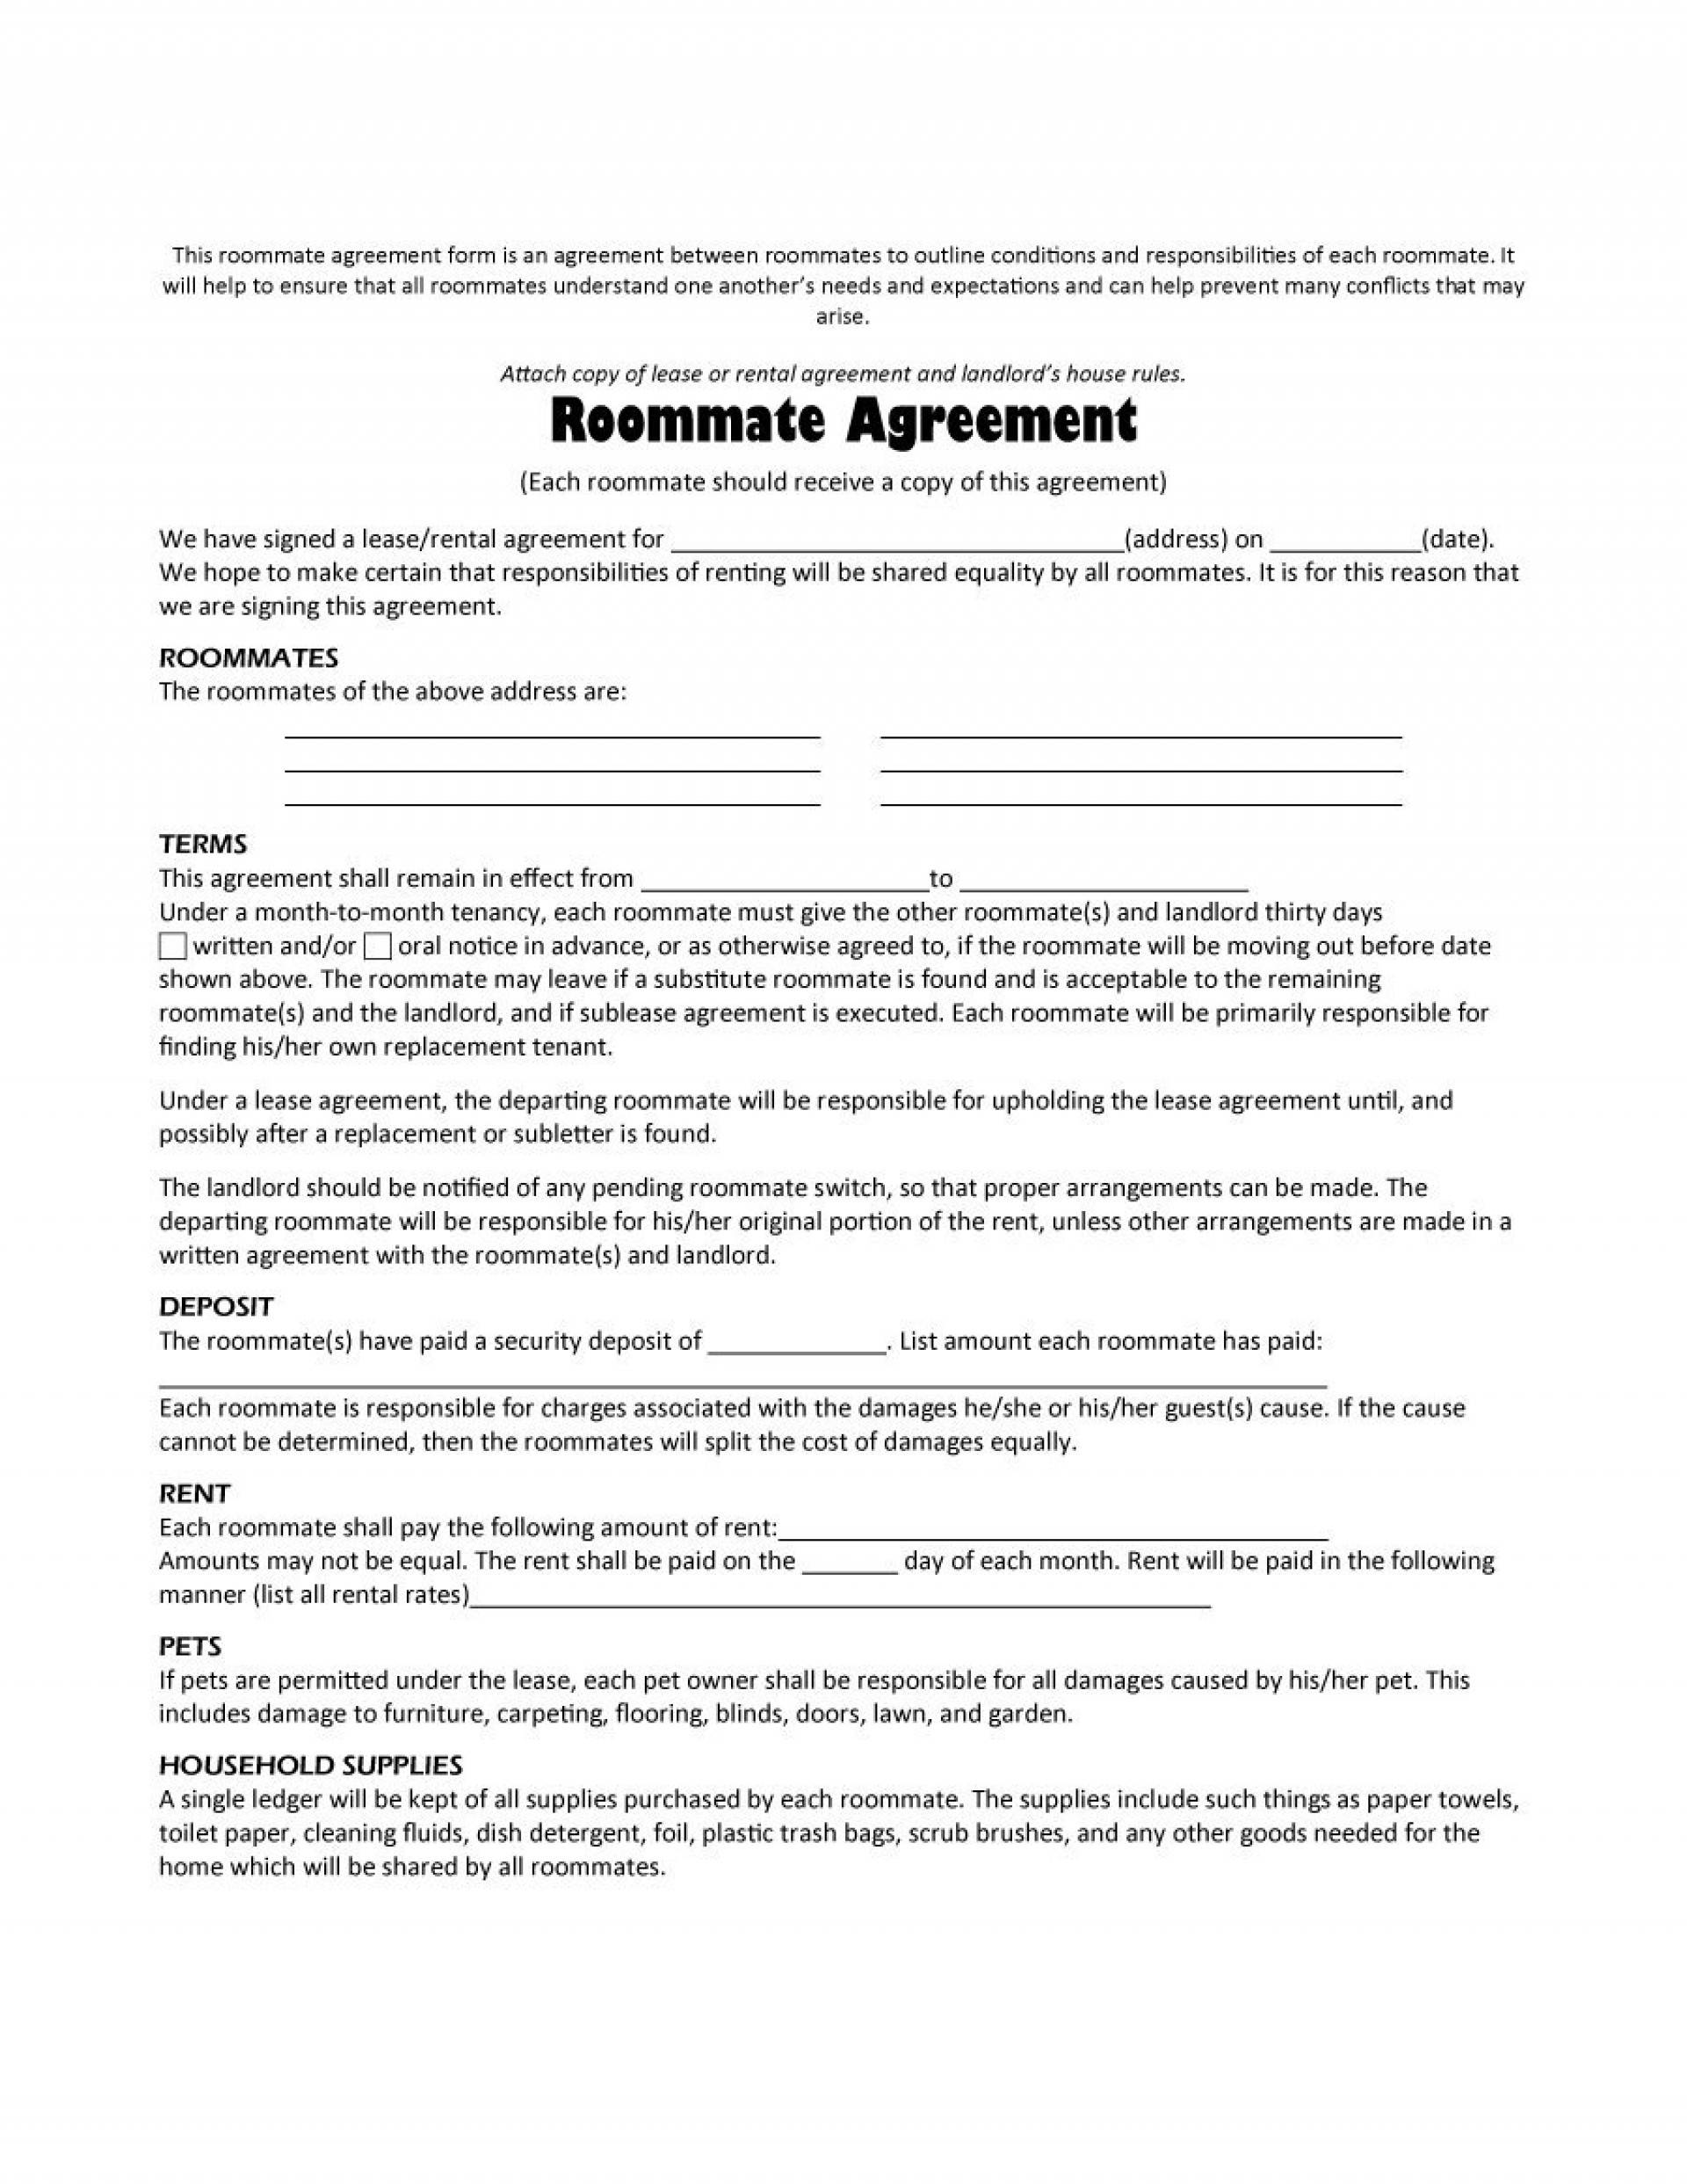 Roommate Lease Agreement Template Free